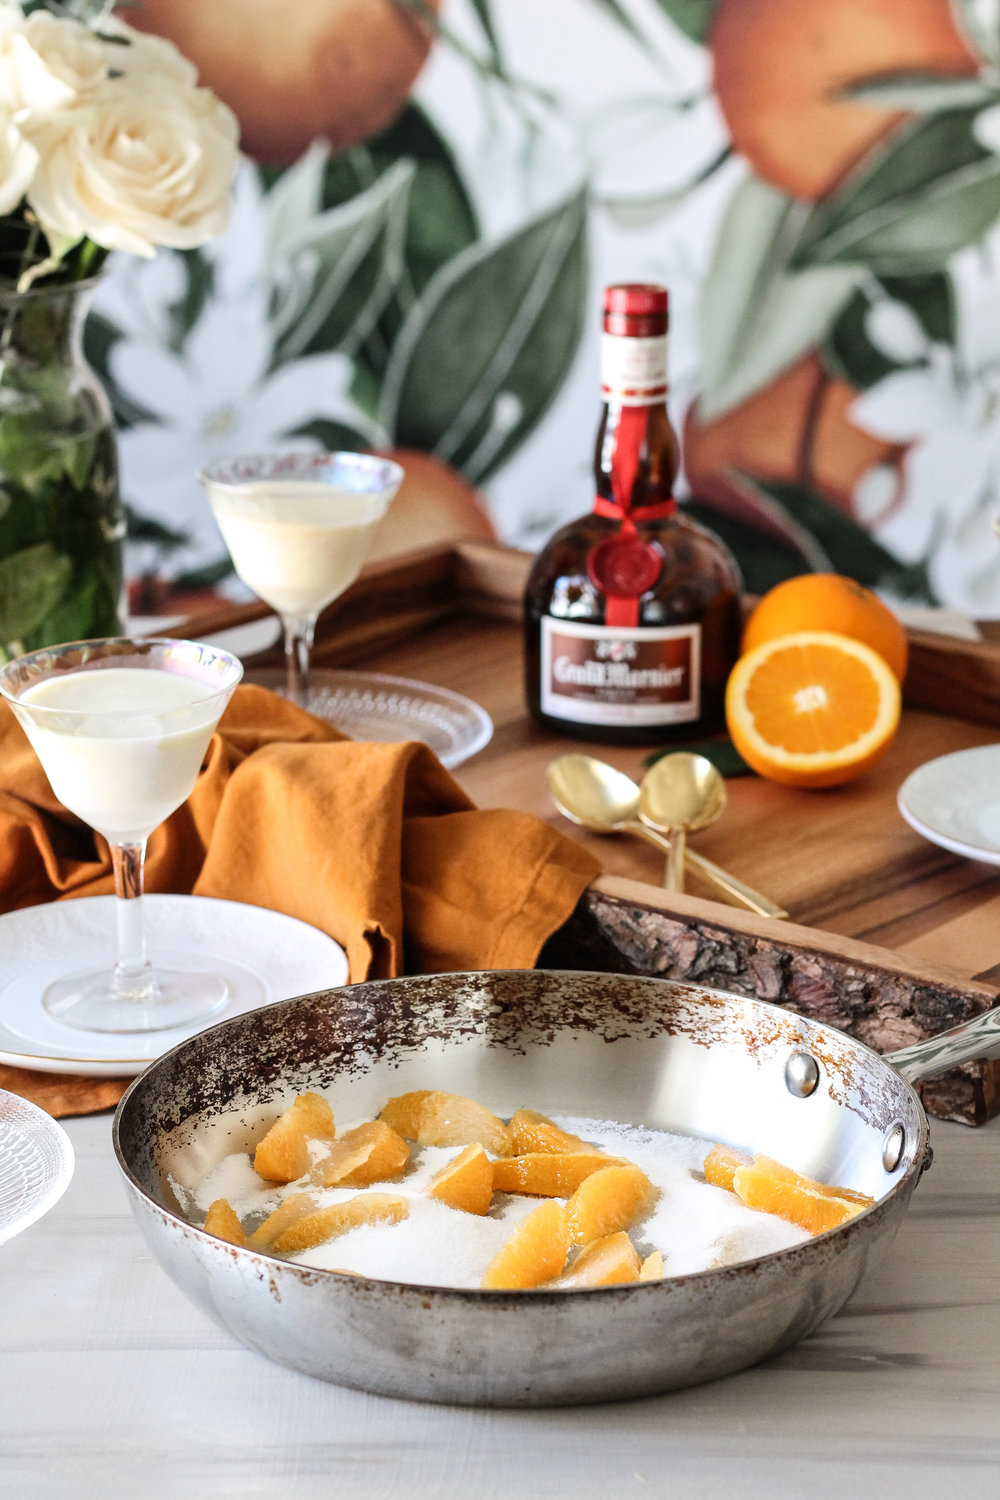 Vanilla Panna Cotta with Grand Marnier Caramelized Oranges makes the perfect Thanksgiving dessert! [ www.pedanticfoodie.com ]